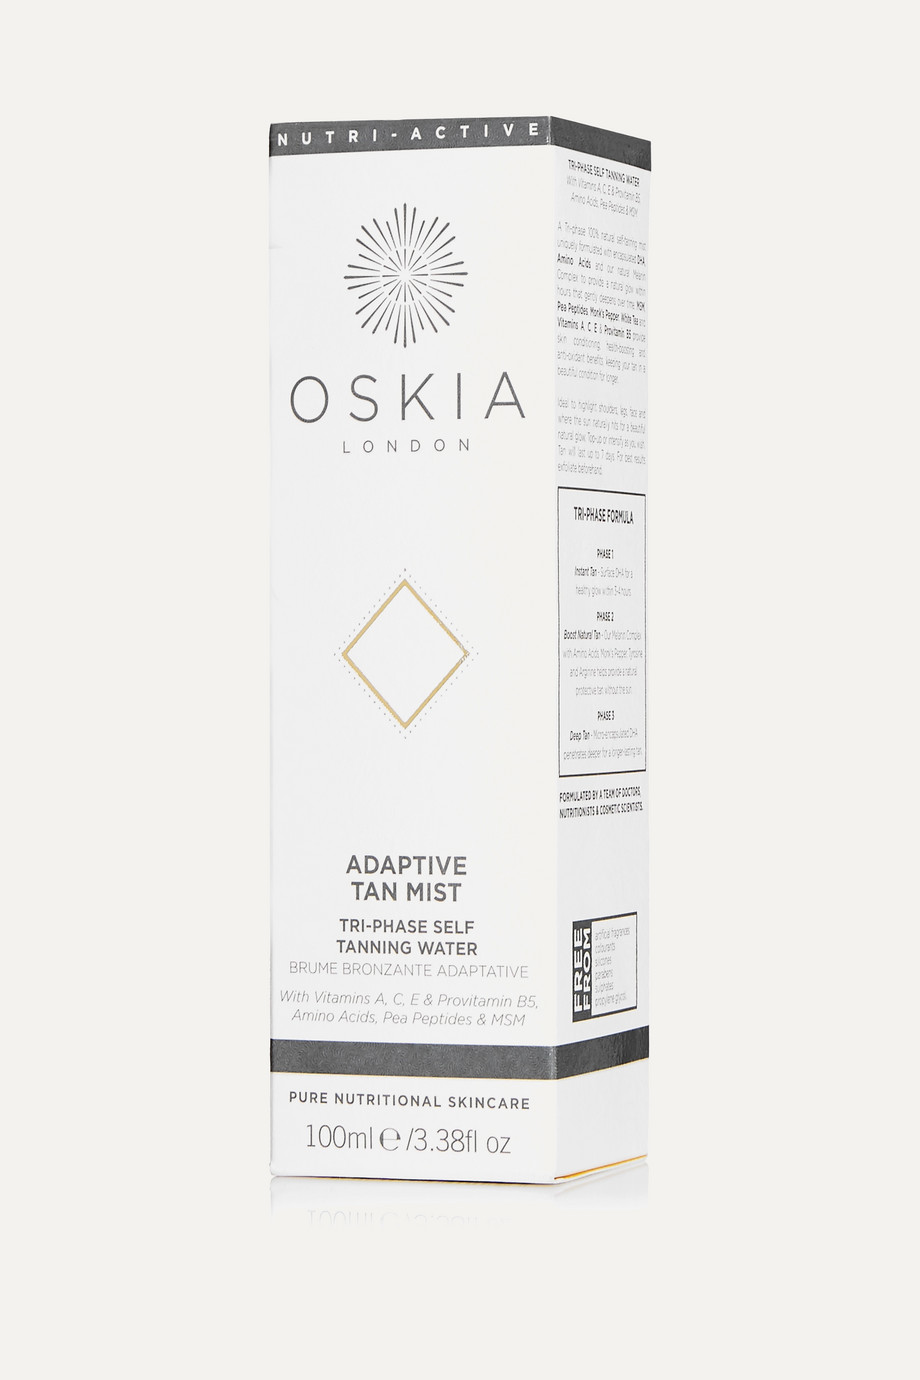 Oskia Adaptive Tan Mist, 100ml